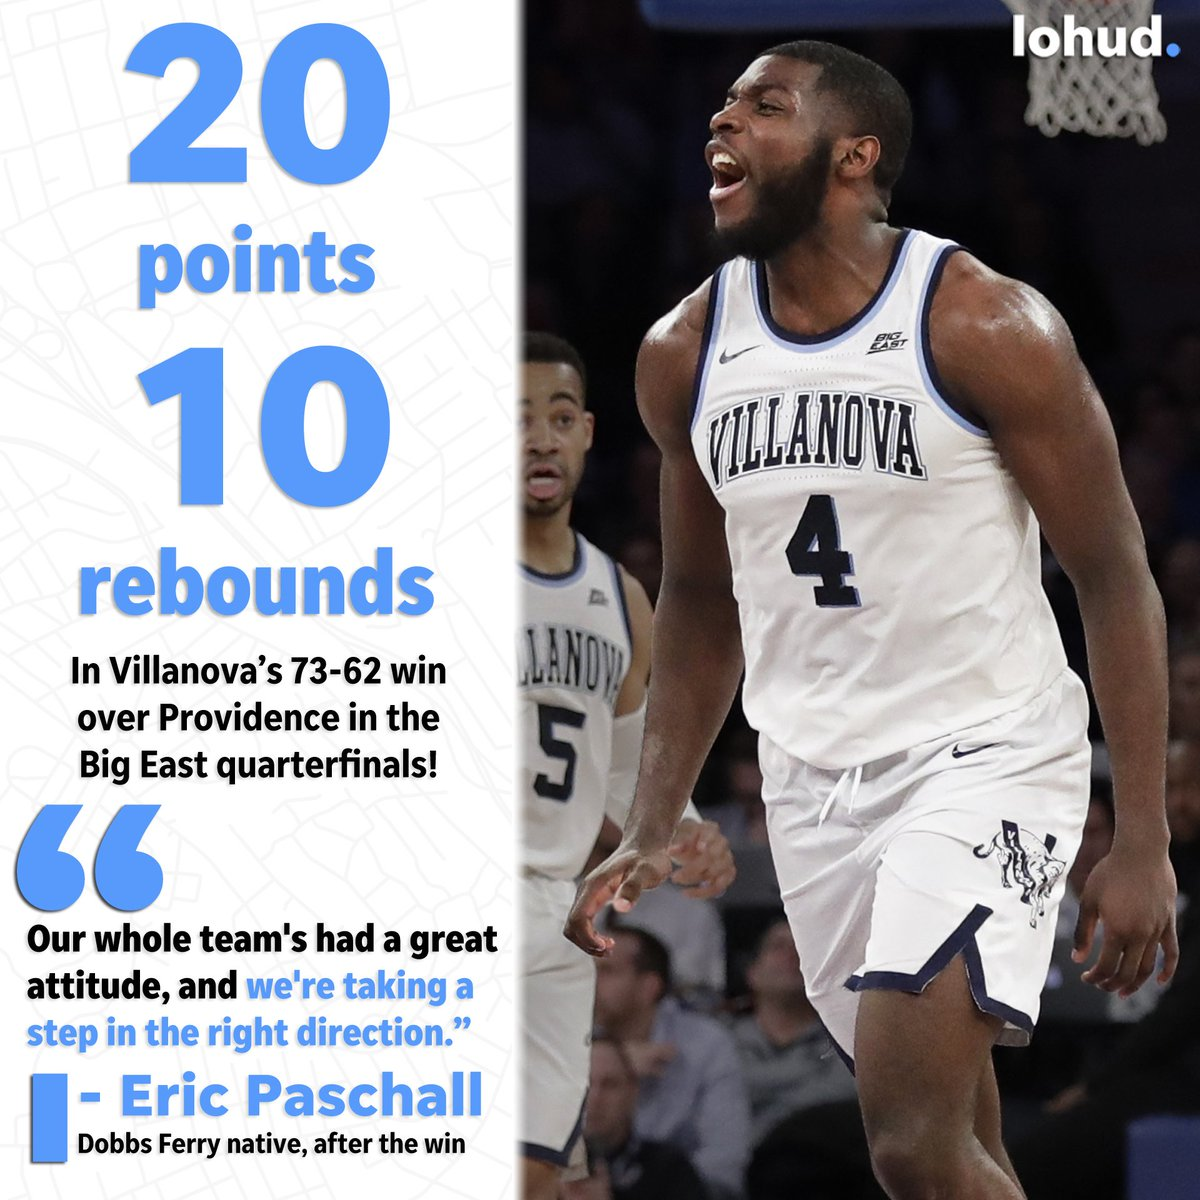 lohud sports's photo on Eric Paschall